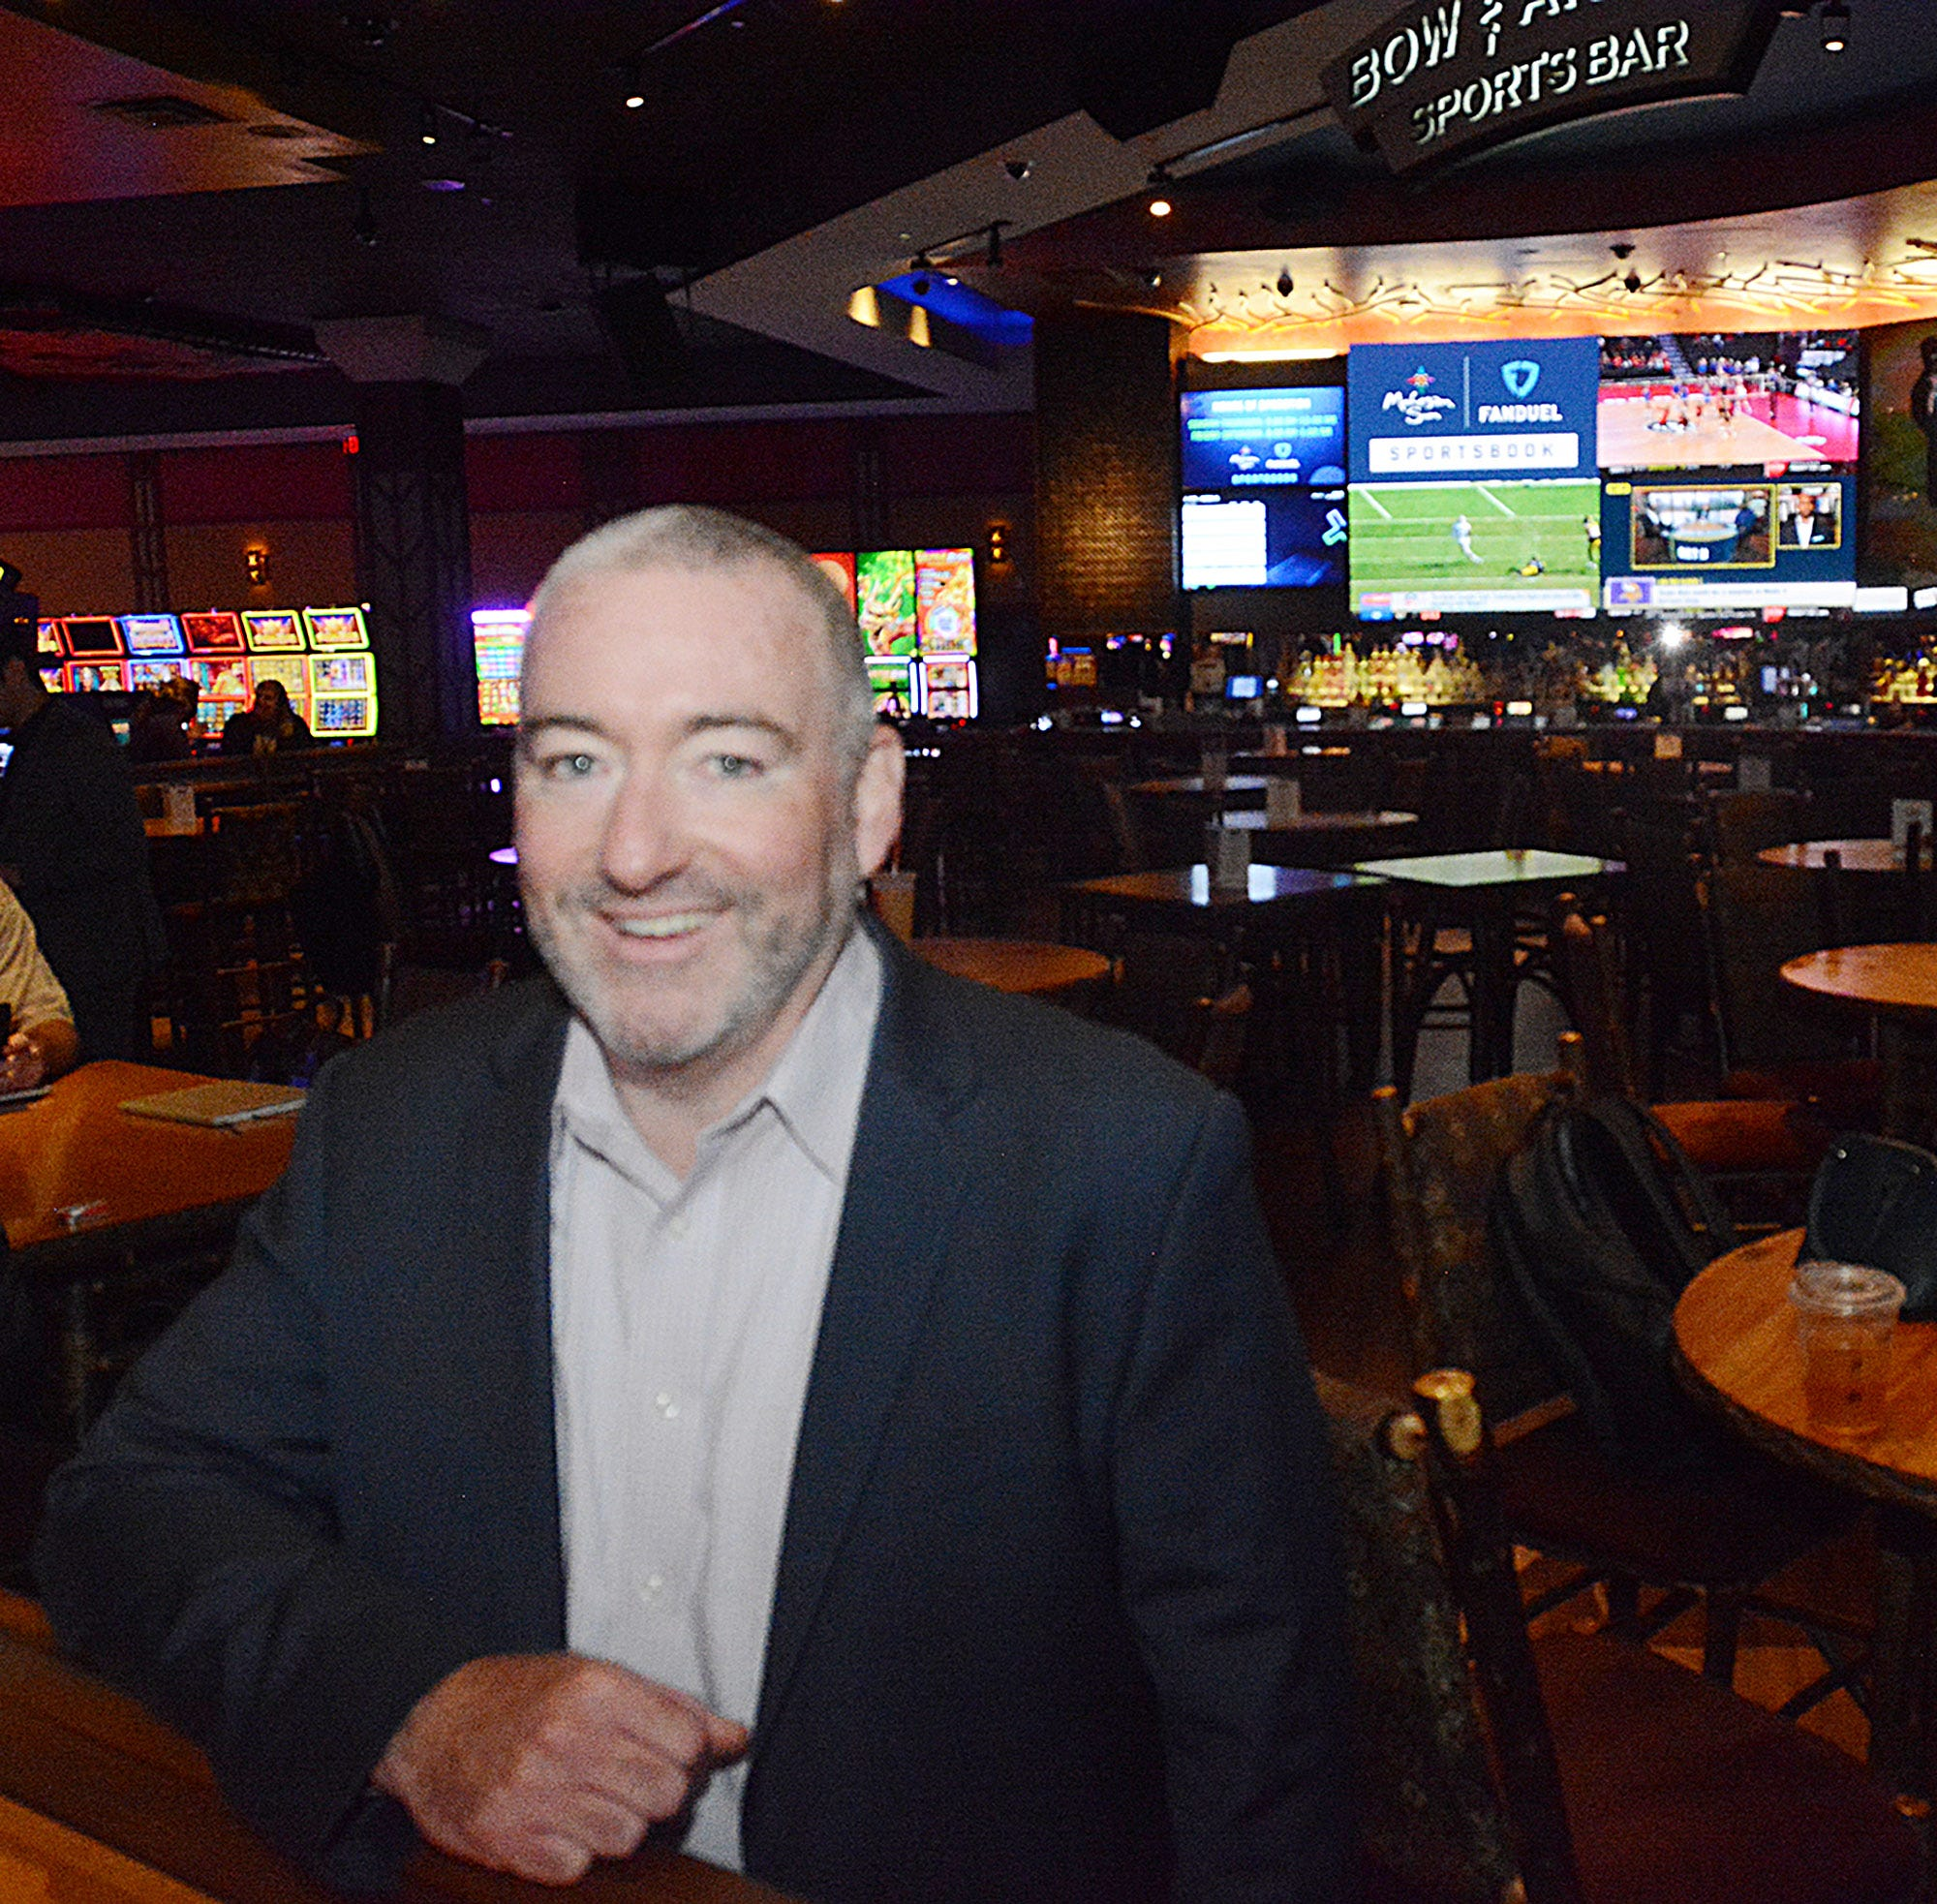 Kevin Lowry is the assistant general manager at Mohegan Sun. A recent college graduate in 1996, he's thankful for the opportunities Mohegan Sun provided him, as he is one of around 500 opening day employees still working there.